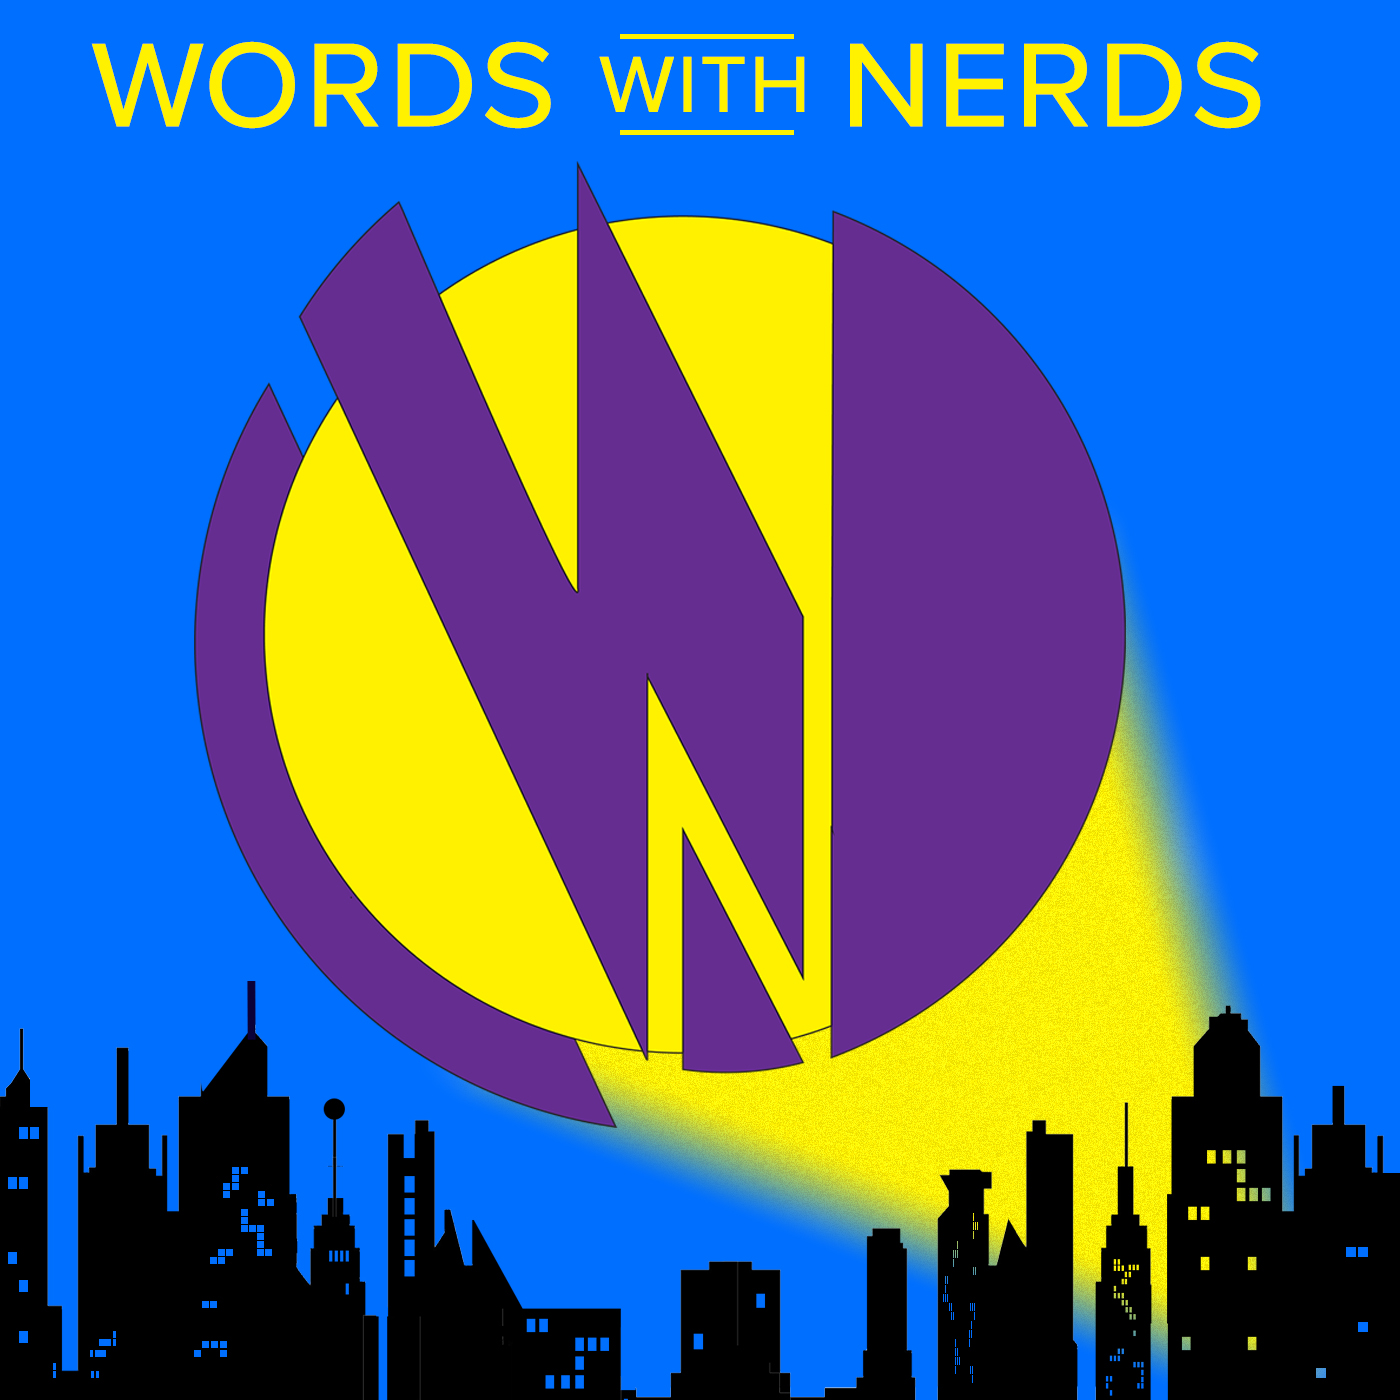 Words With Nerds